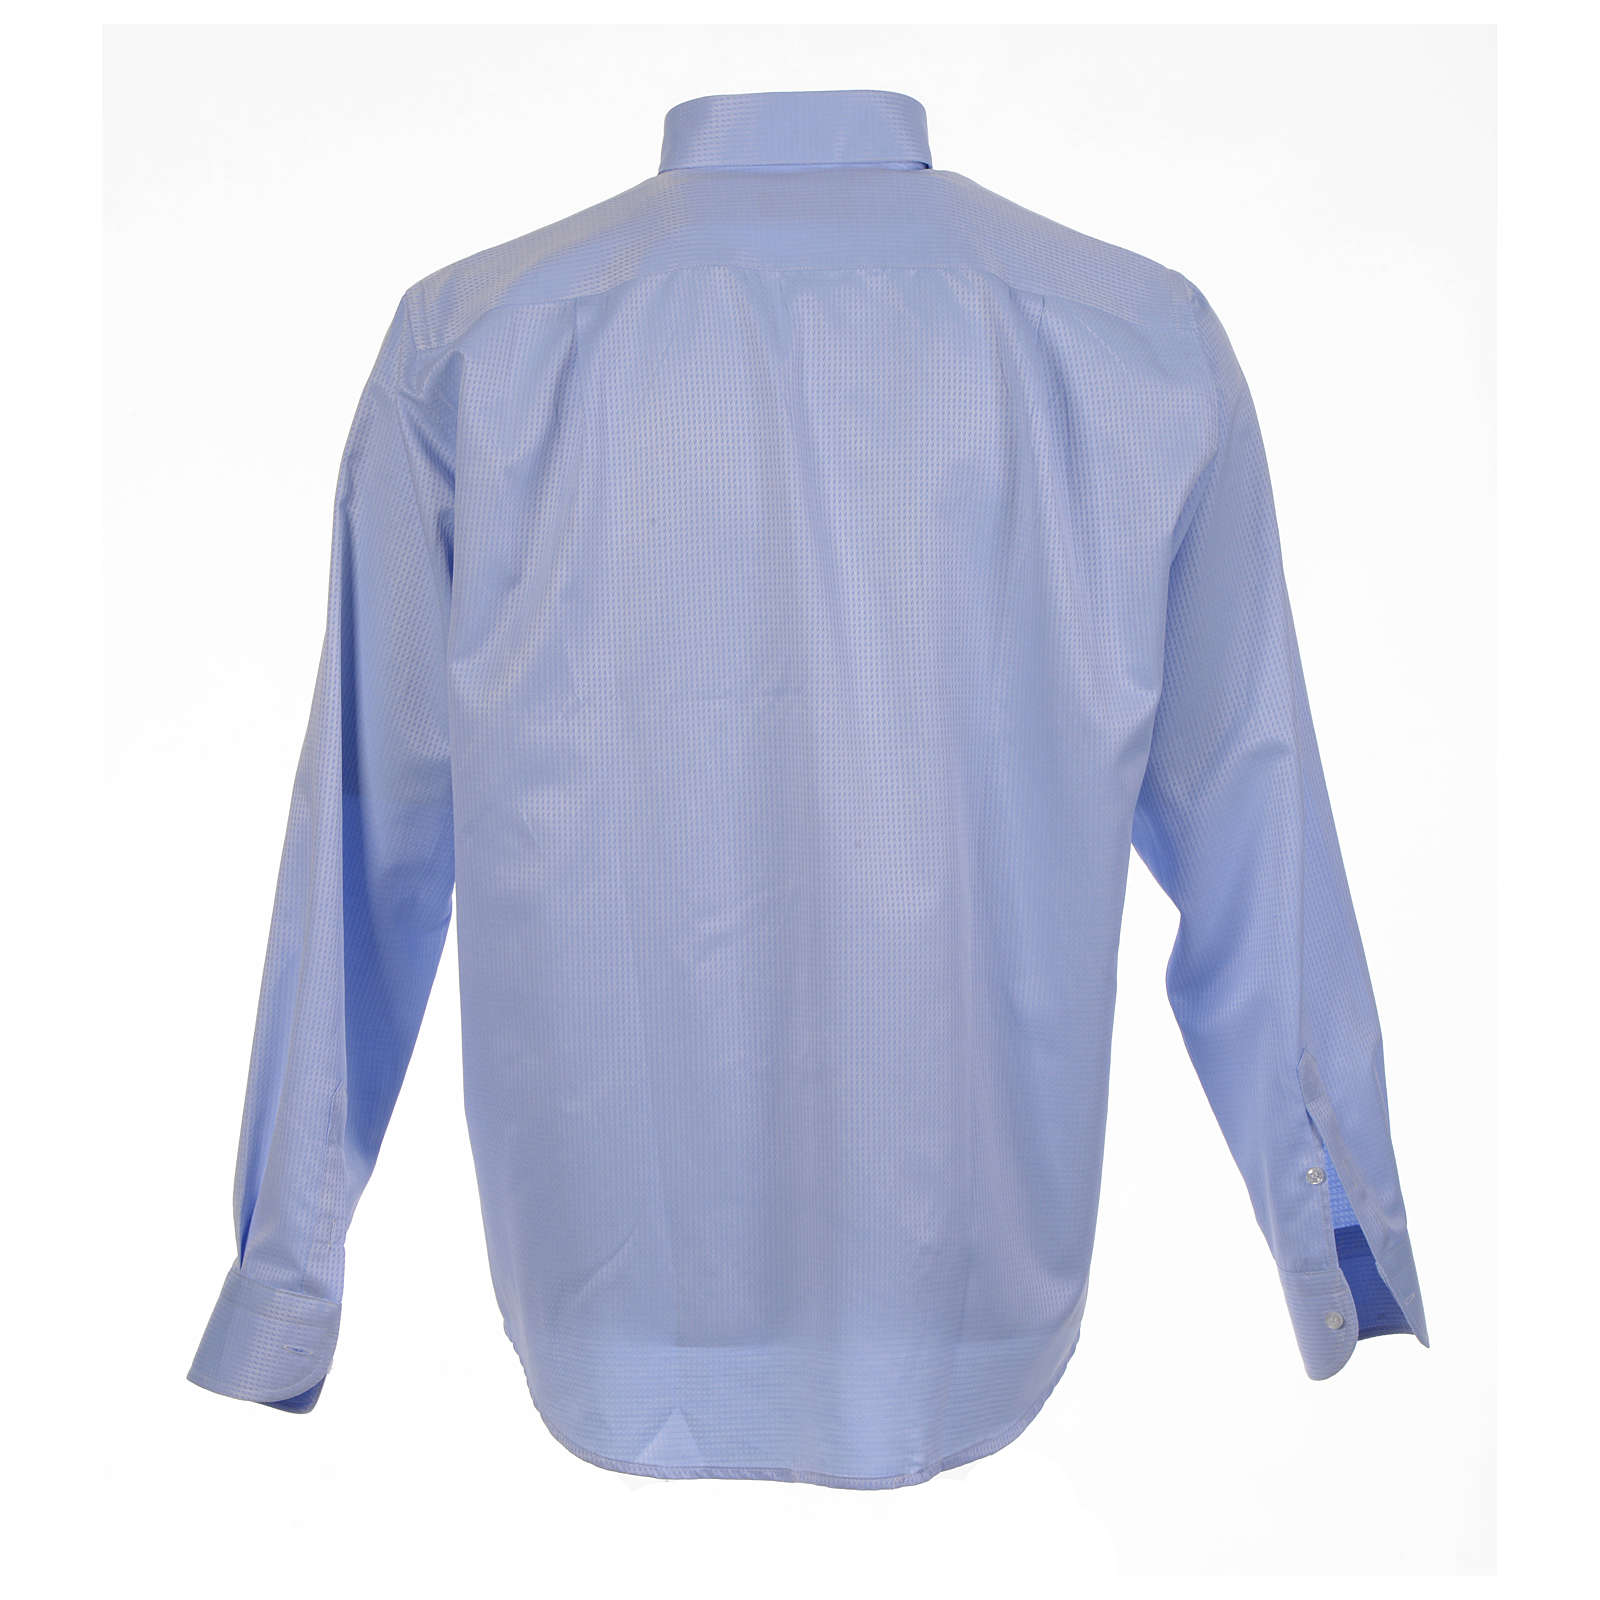 Clergy long sleeve shirt in sky blue, jacquard 4